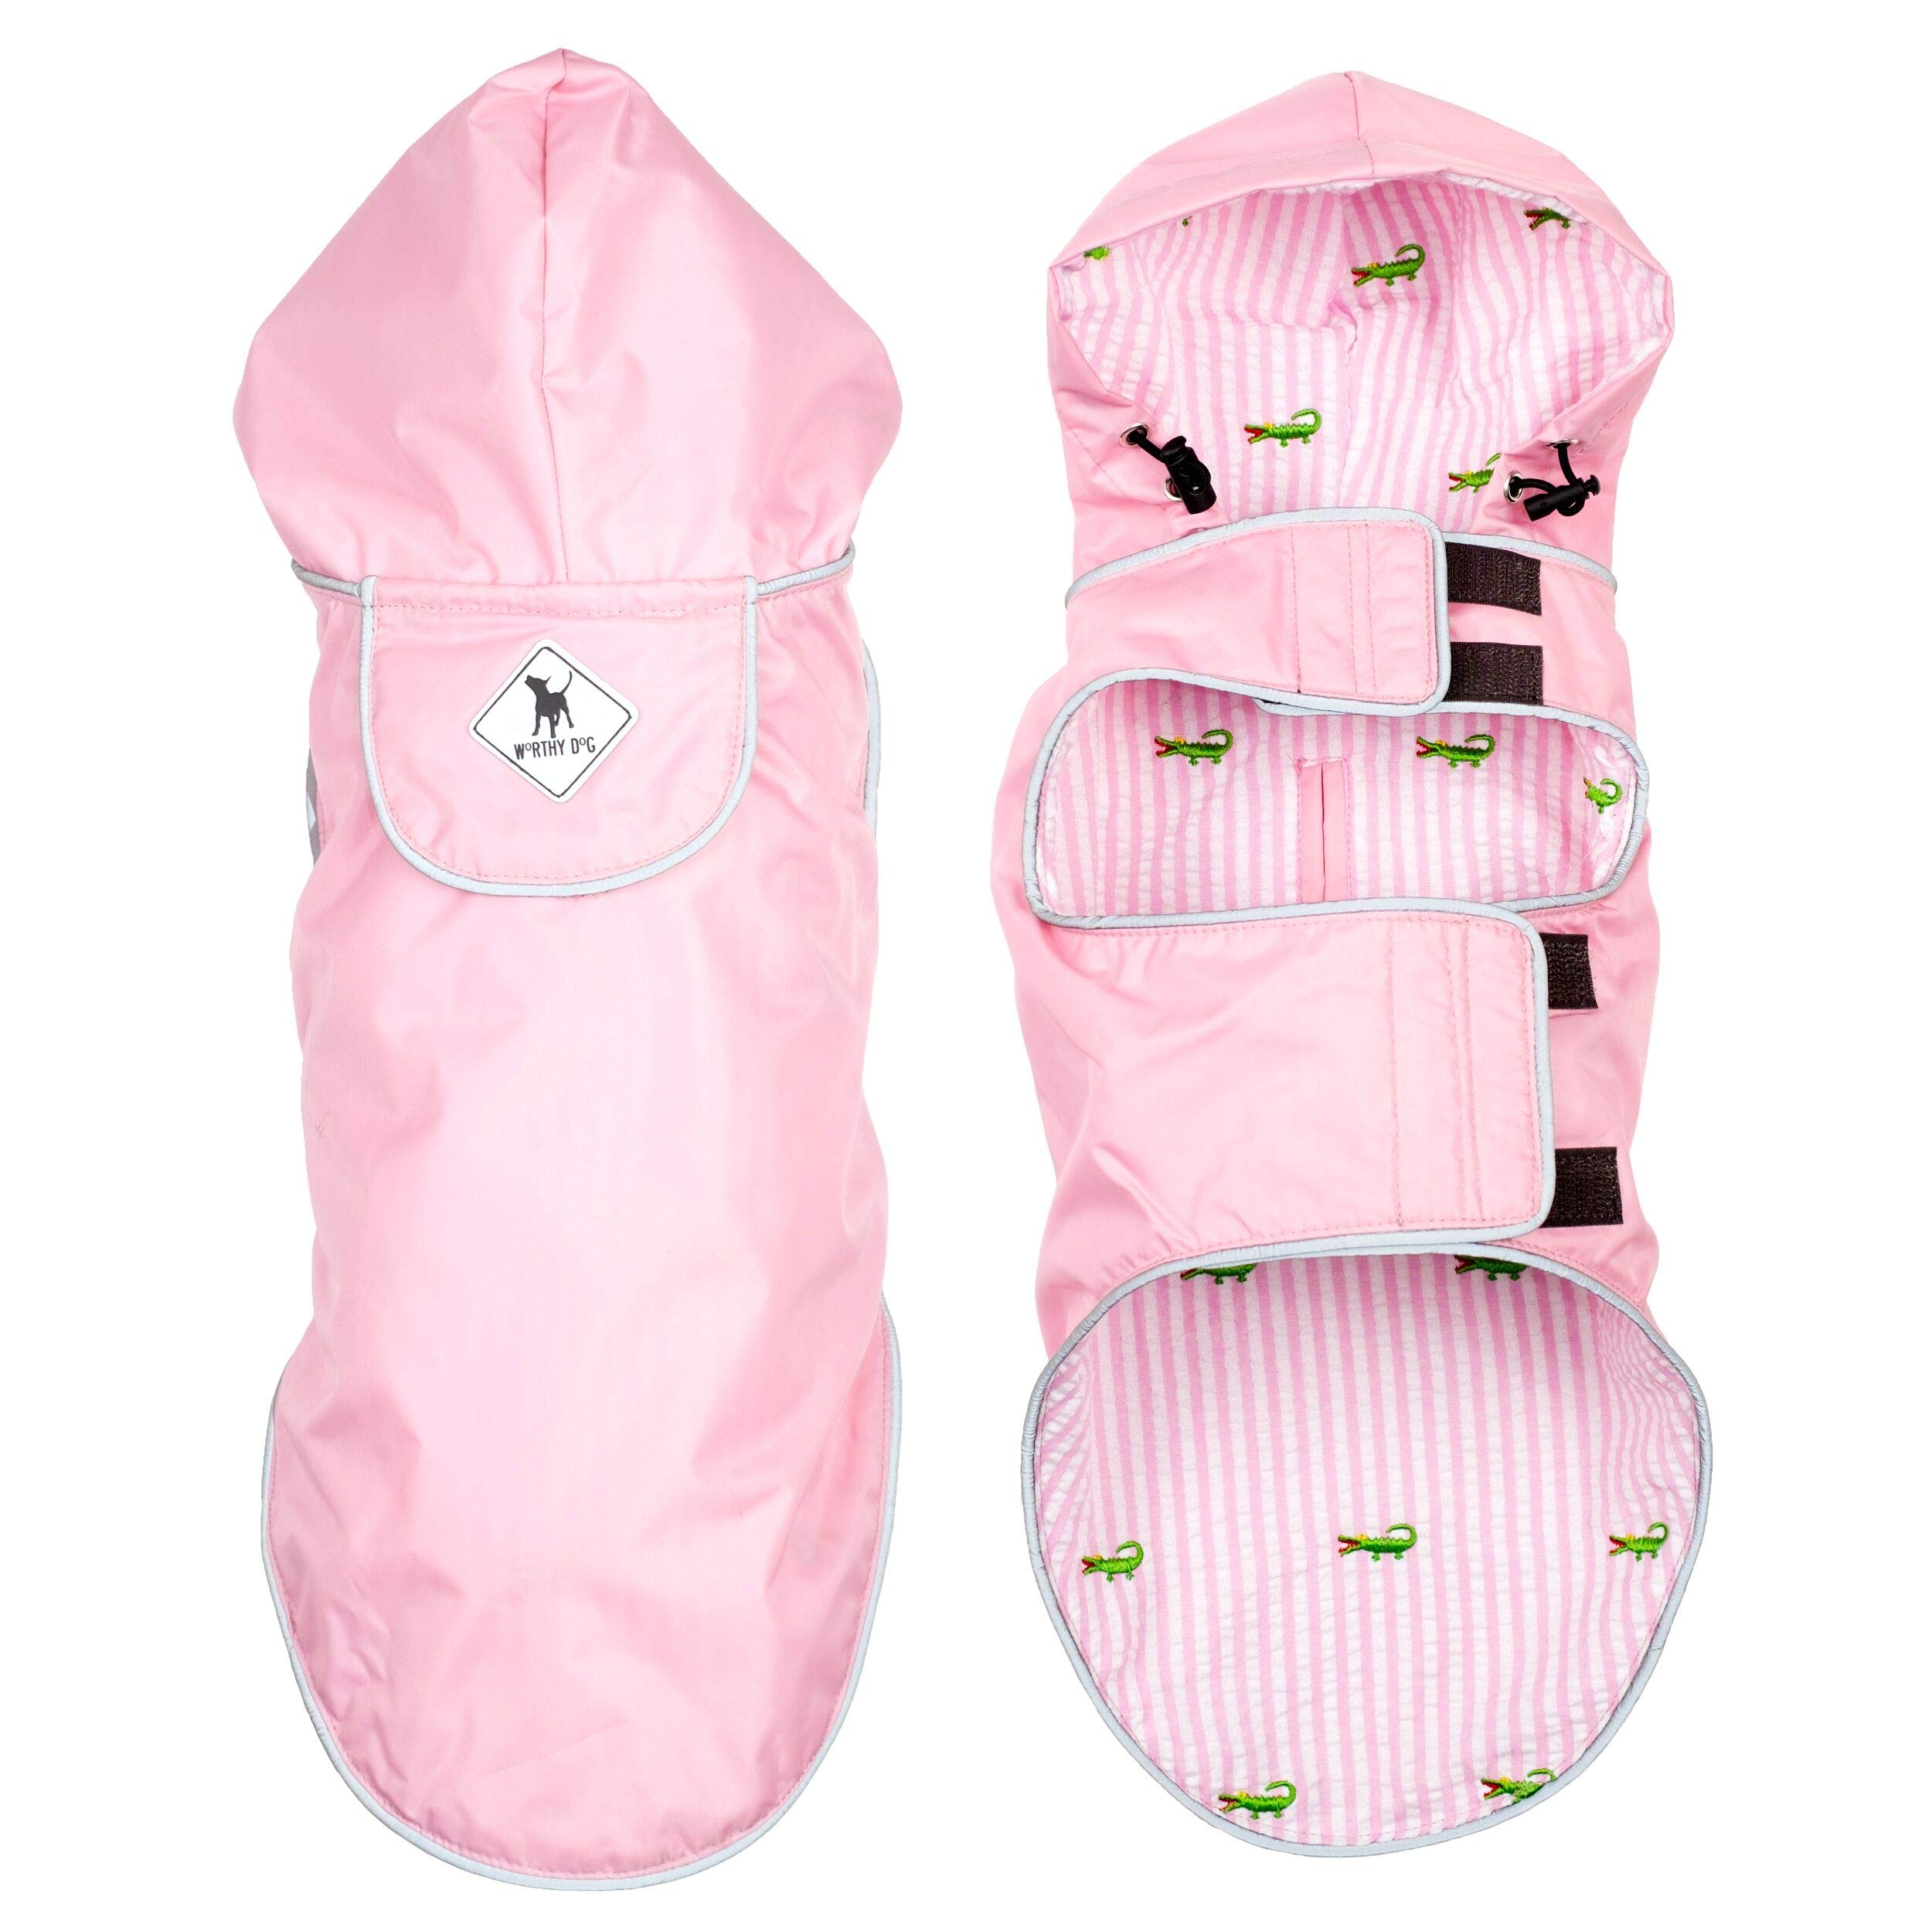 The Worthy Dog Seattle Slicker Wind and Water Resistant Hooded Rain Jacket with Reflective Trim for Small Medium Large Dogs, Pink, XS